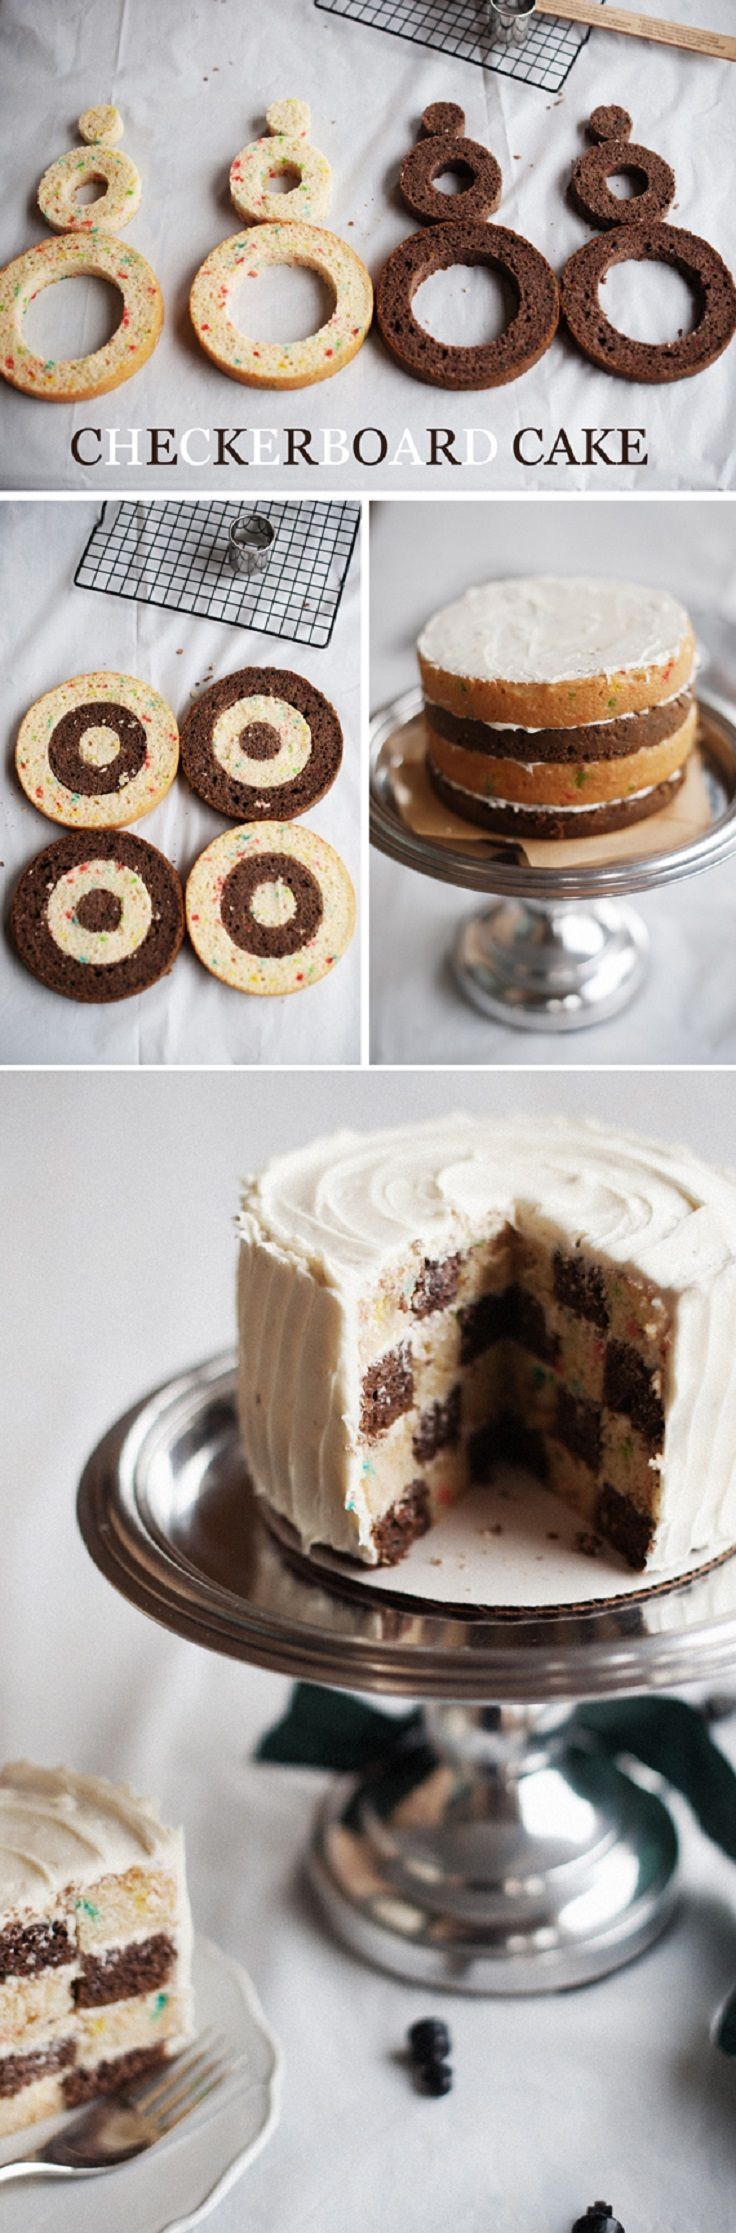 Checkerboard Cake Decorating Technique - 17 Amazing Cake Decorating Ideas, Tips and Tricks That'll Make You A Pro